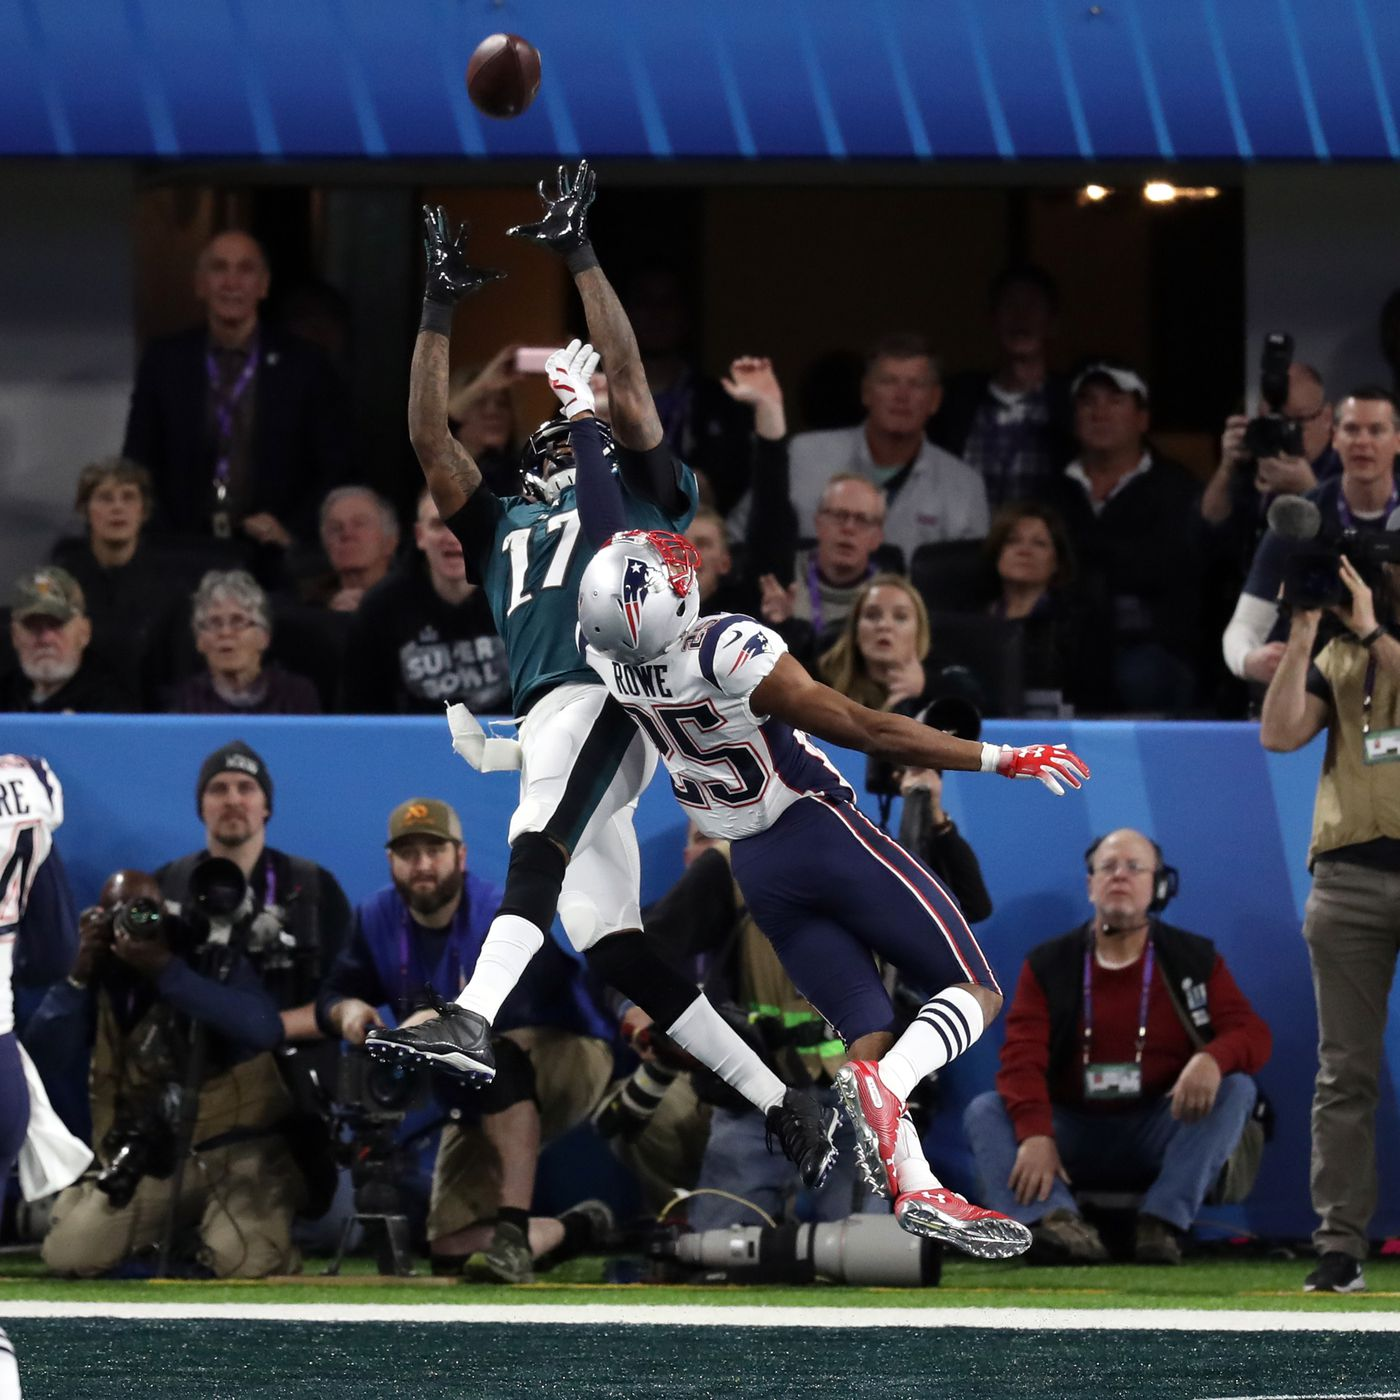 d1ef68fda Alshon Jeffery torched the Patriots in the first half of Super Bowl 52 -  SBNation.com